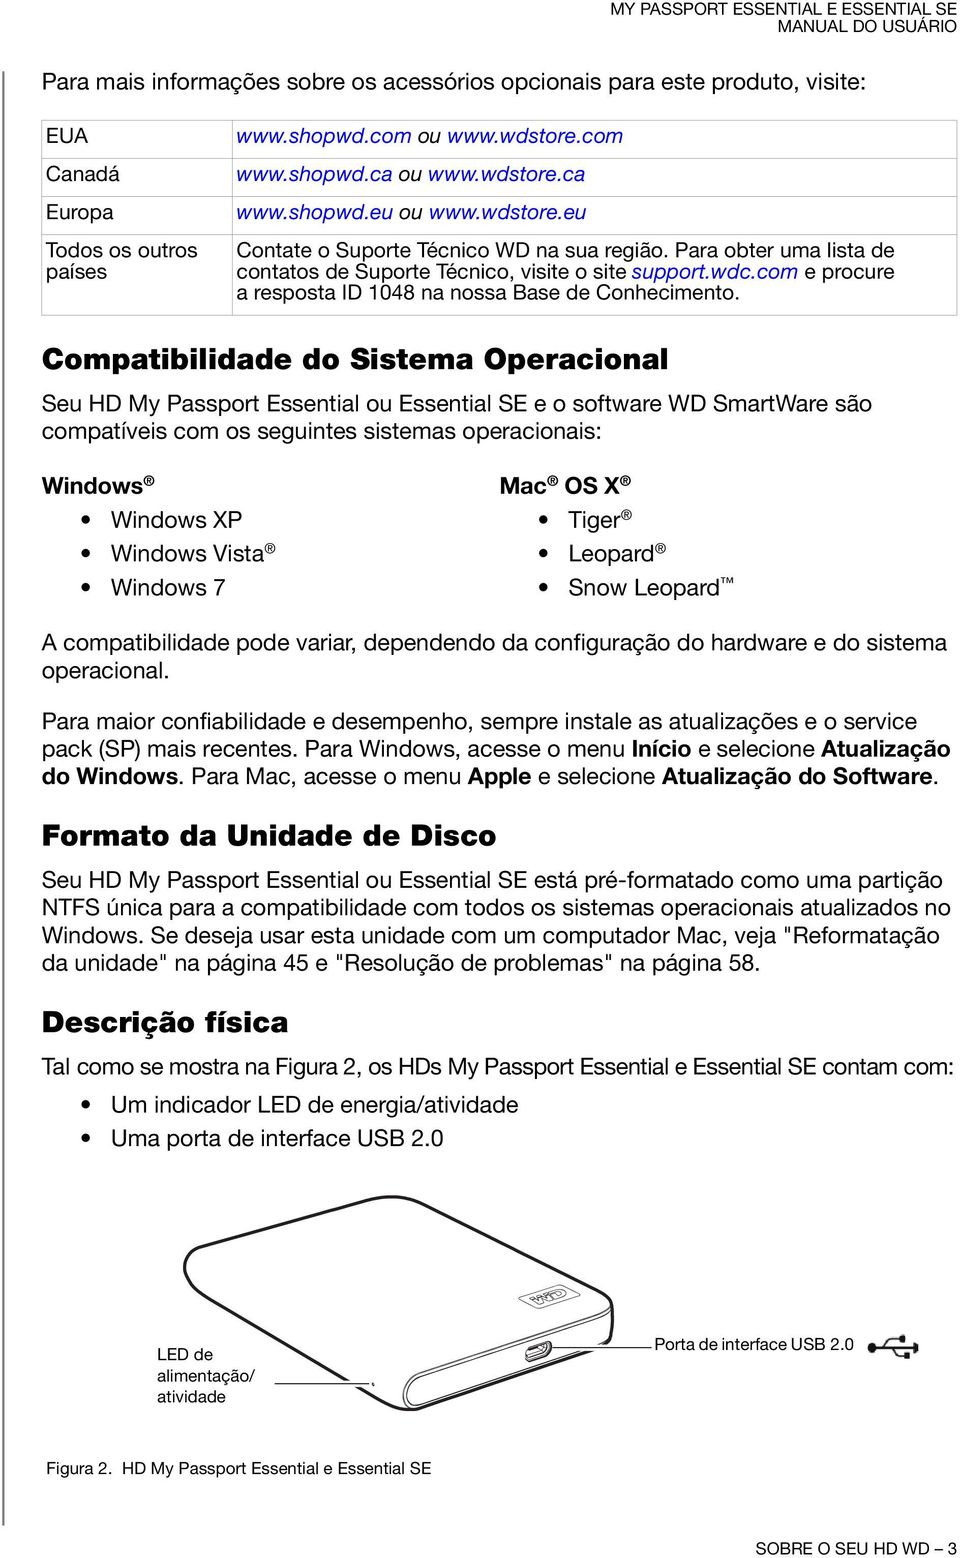 Compatibilidade do Sistema Operacional Seu HD My Passport Essential ou Essential SE e o software WD SmartWare são compatíveis com os seguintes sistemas operacionais: Windows Mac OS X Windows XP Tiger